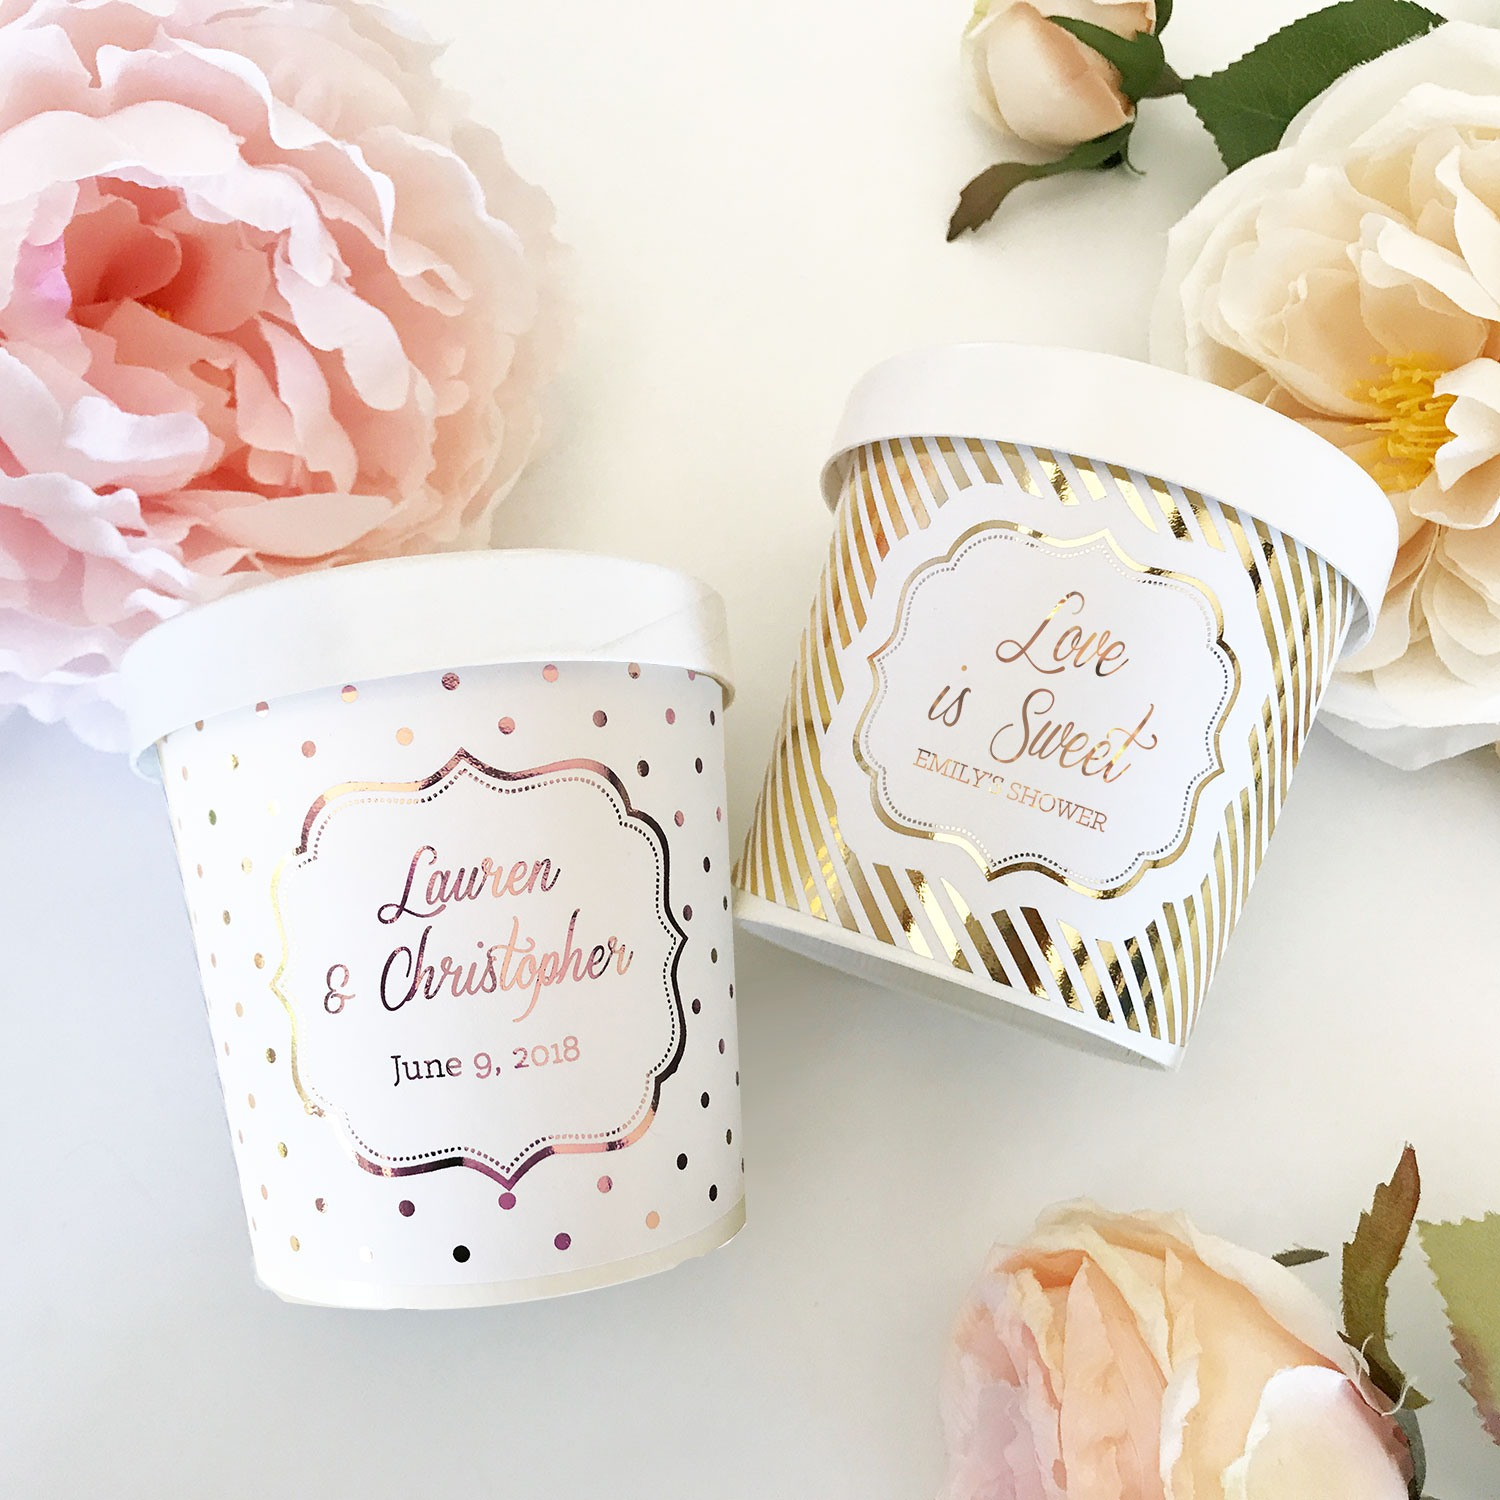 Custom Metallic Foil Ice Cream Containers 10749